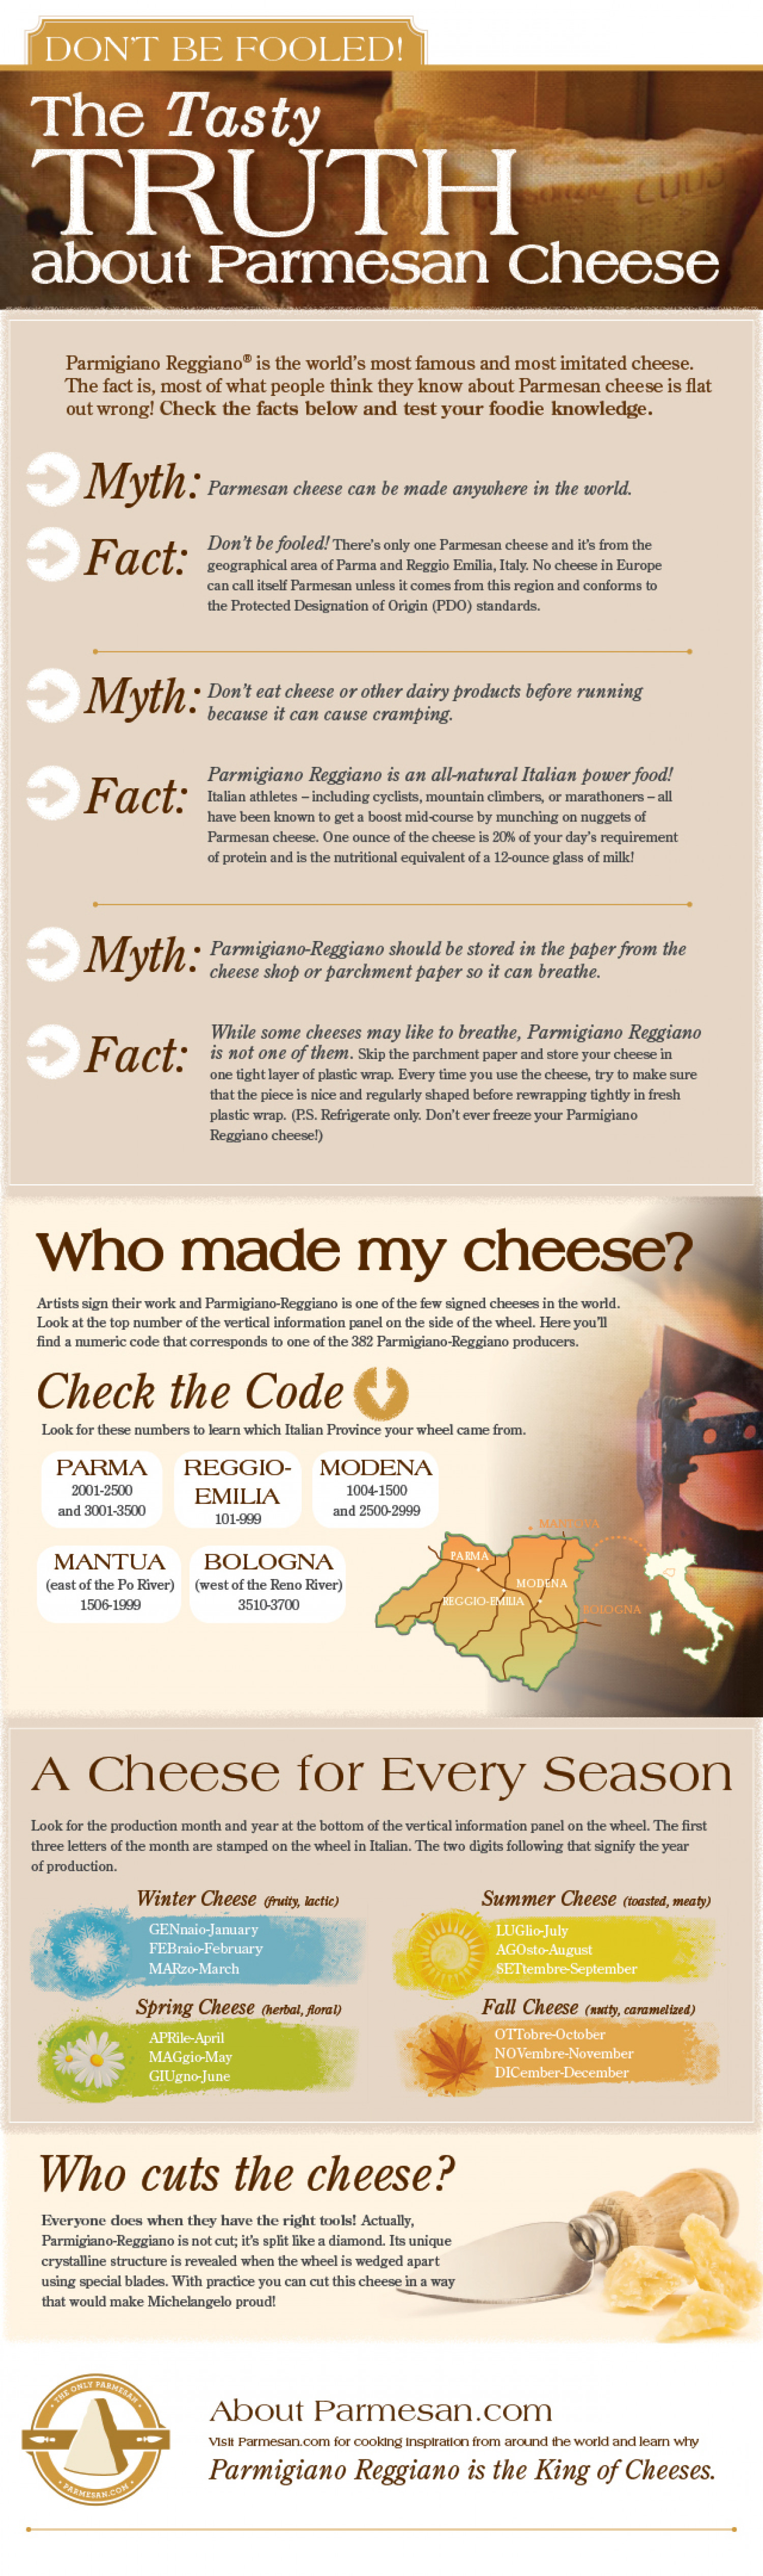 Don't Be Fooled! The Tasty Truth about Parmesan Cheese Infographic